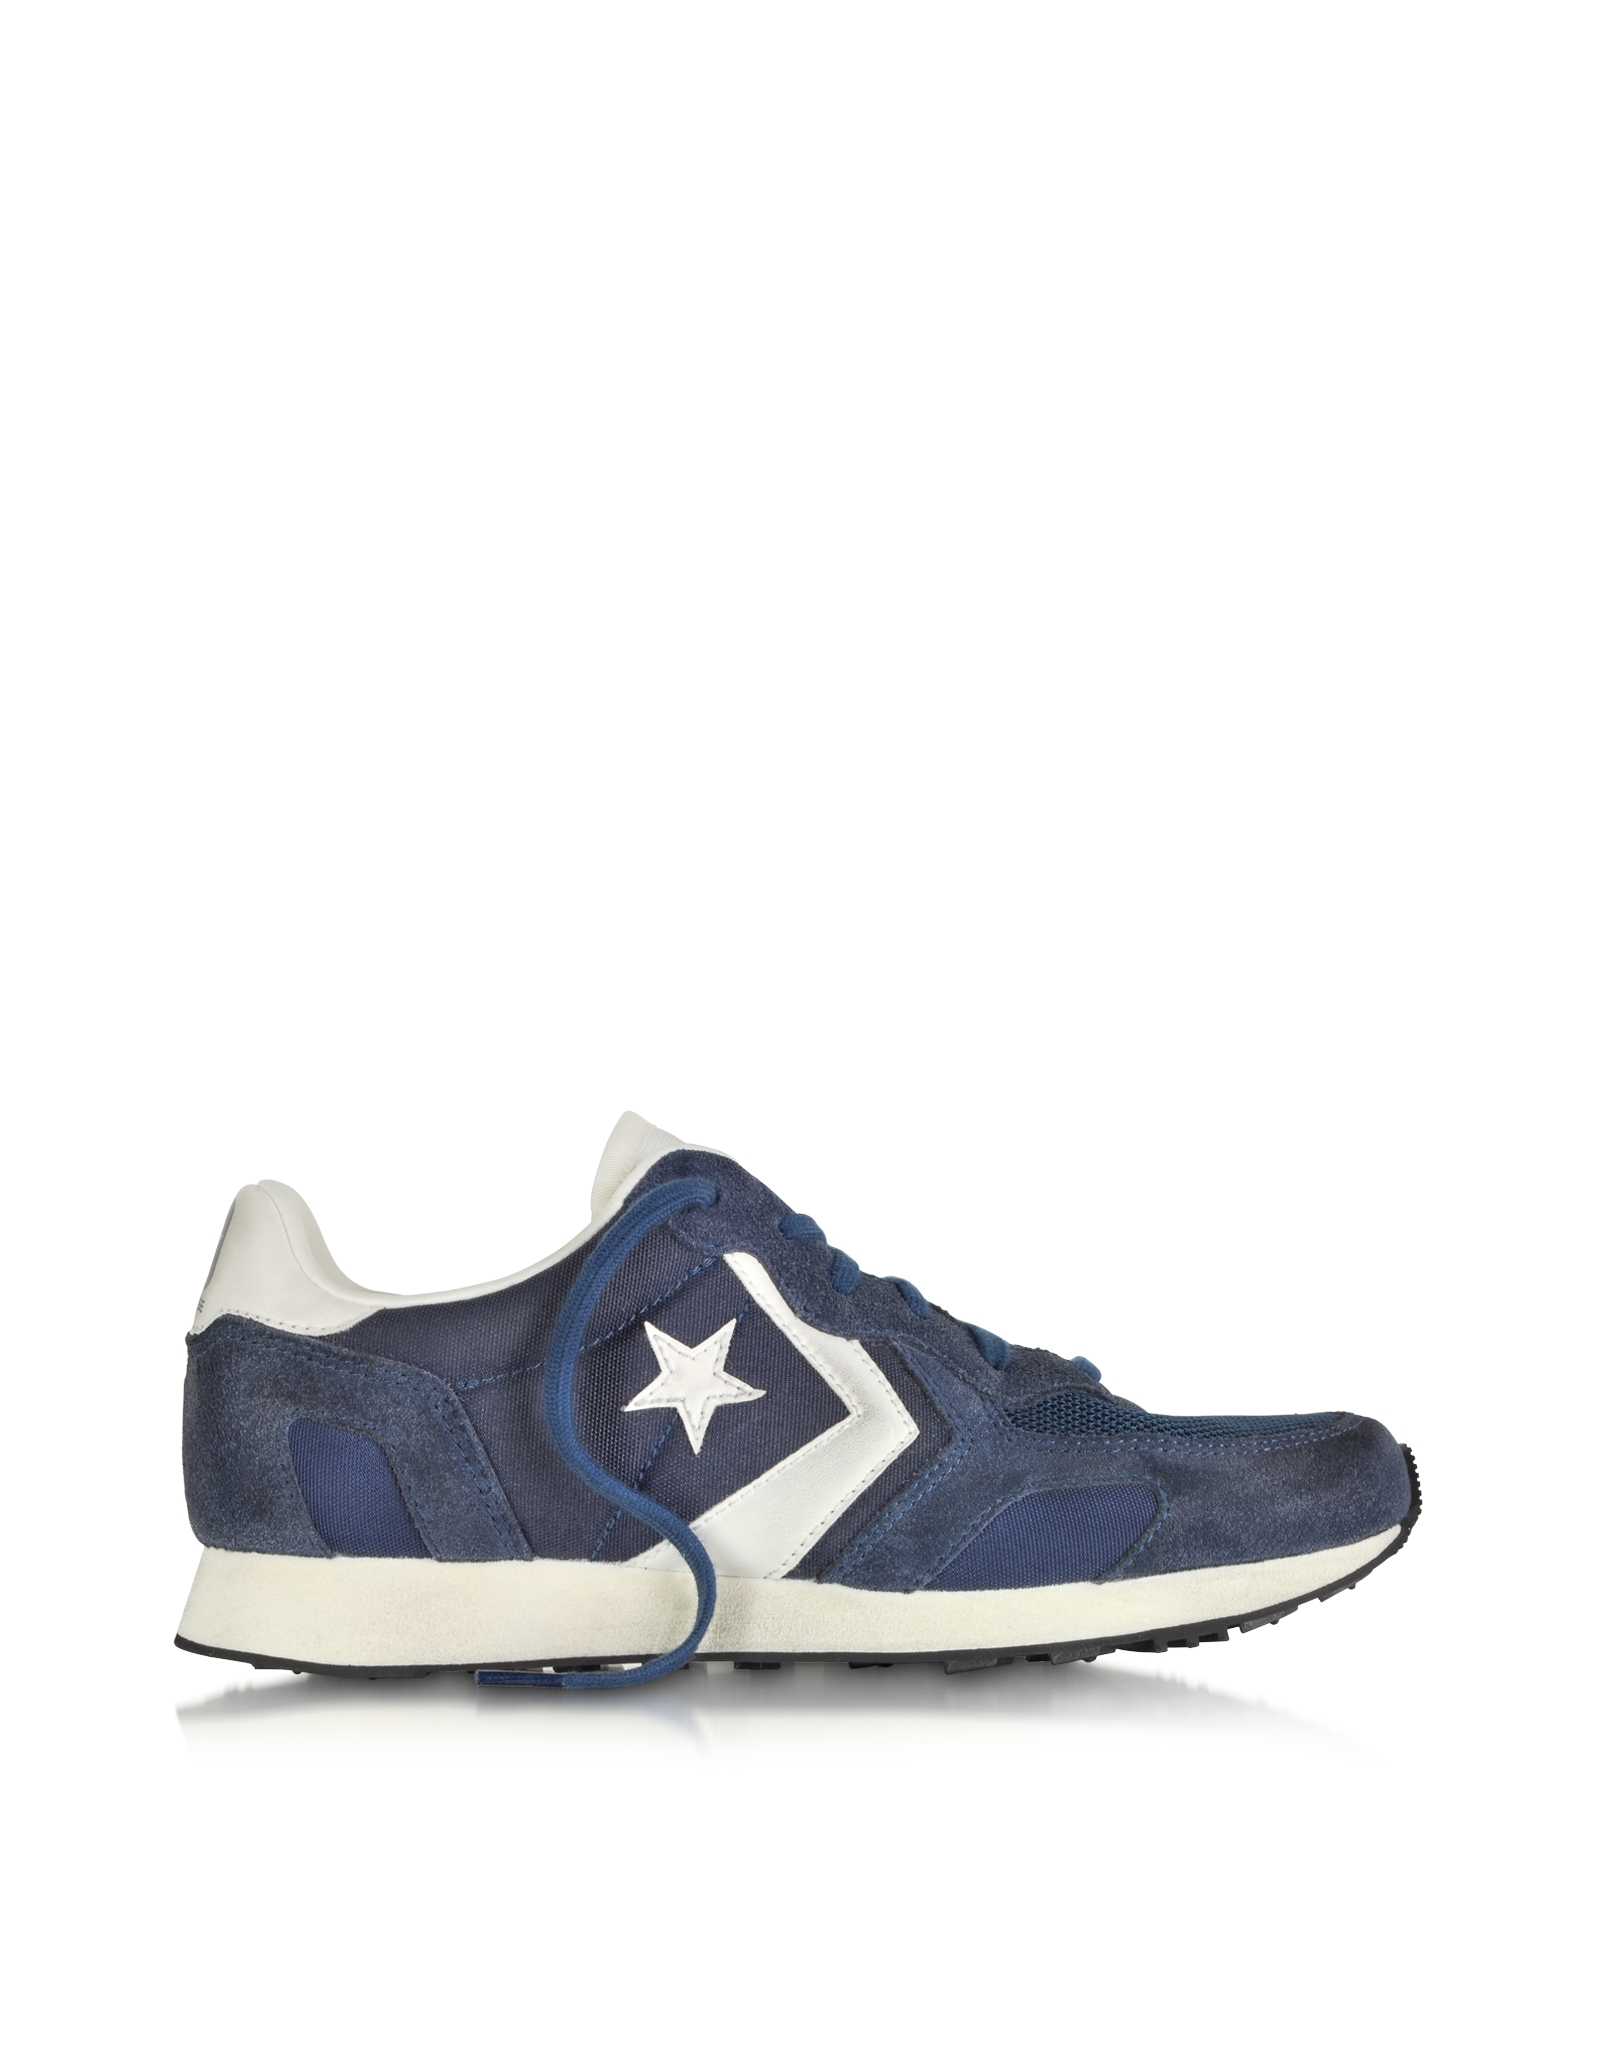 Lyst - Converse Auckland Racer Ox Navy Blue Nylon And Suede Sneaker ... b9938cb22